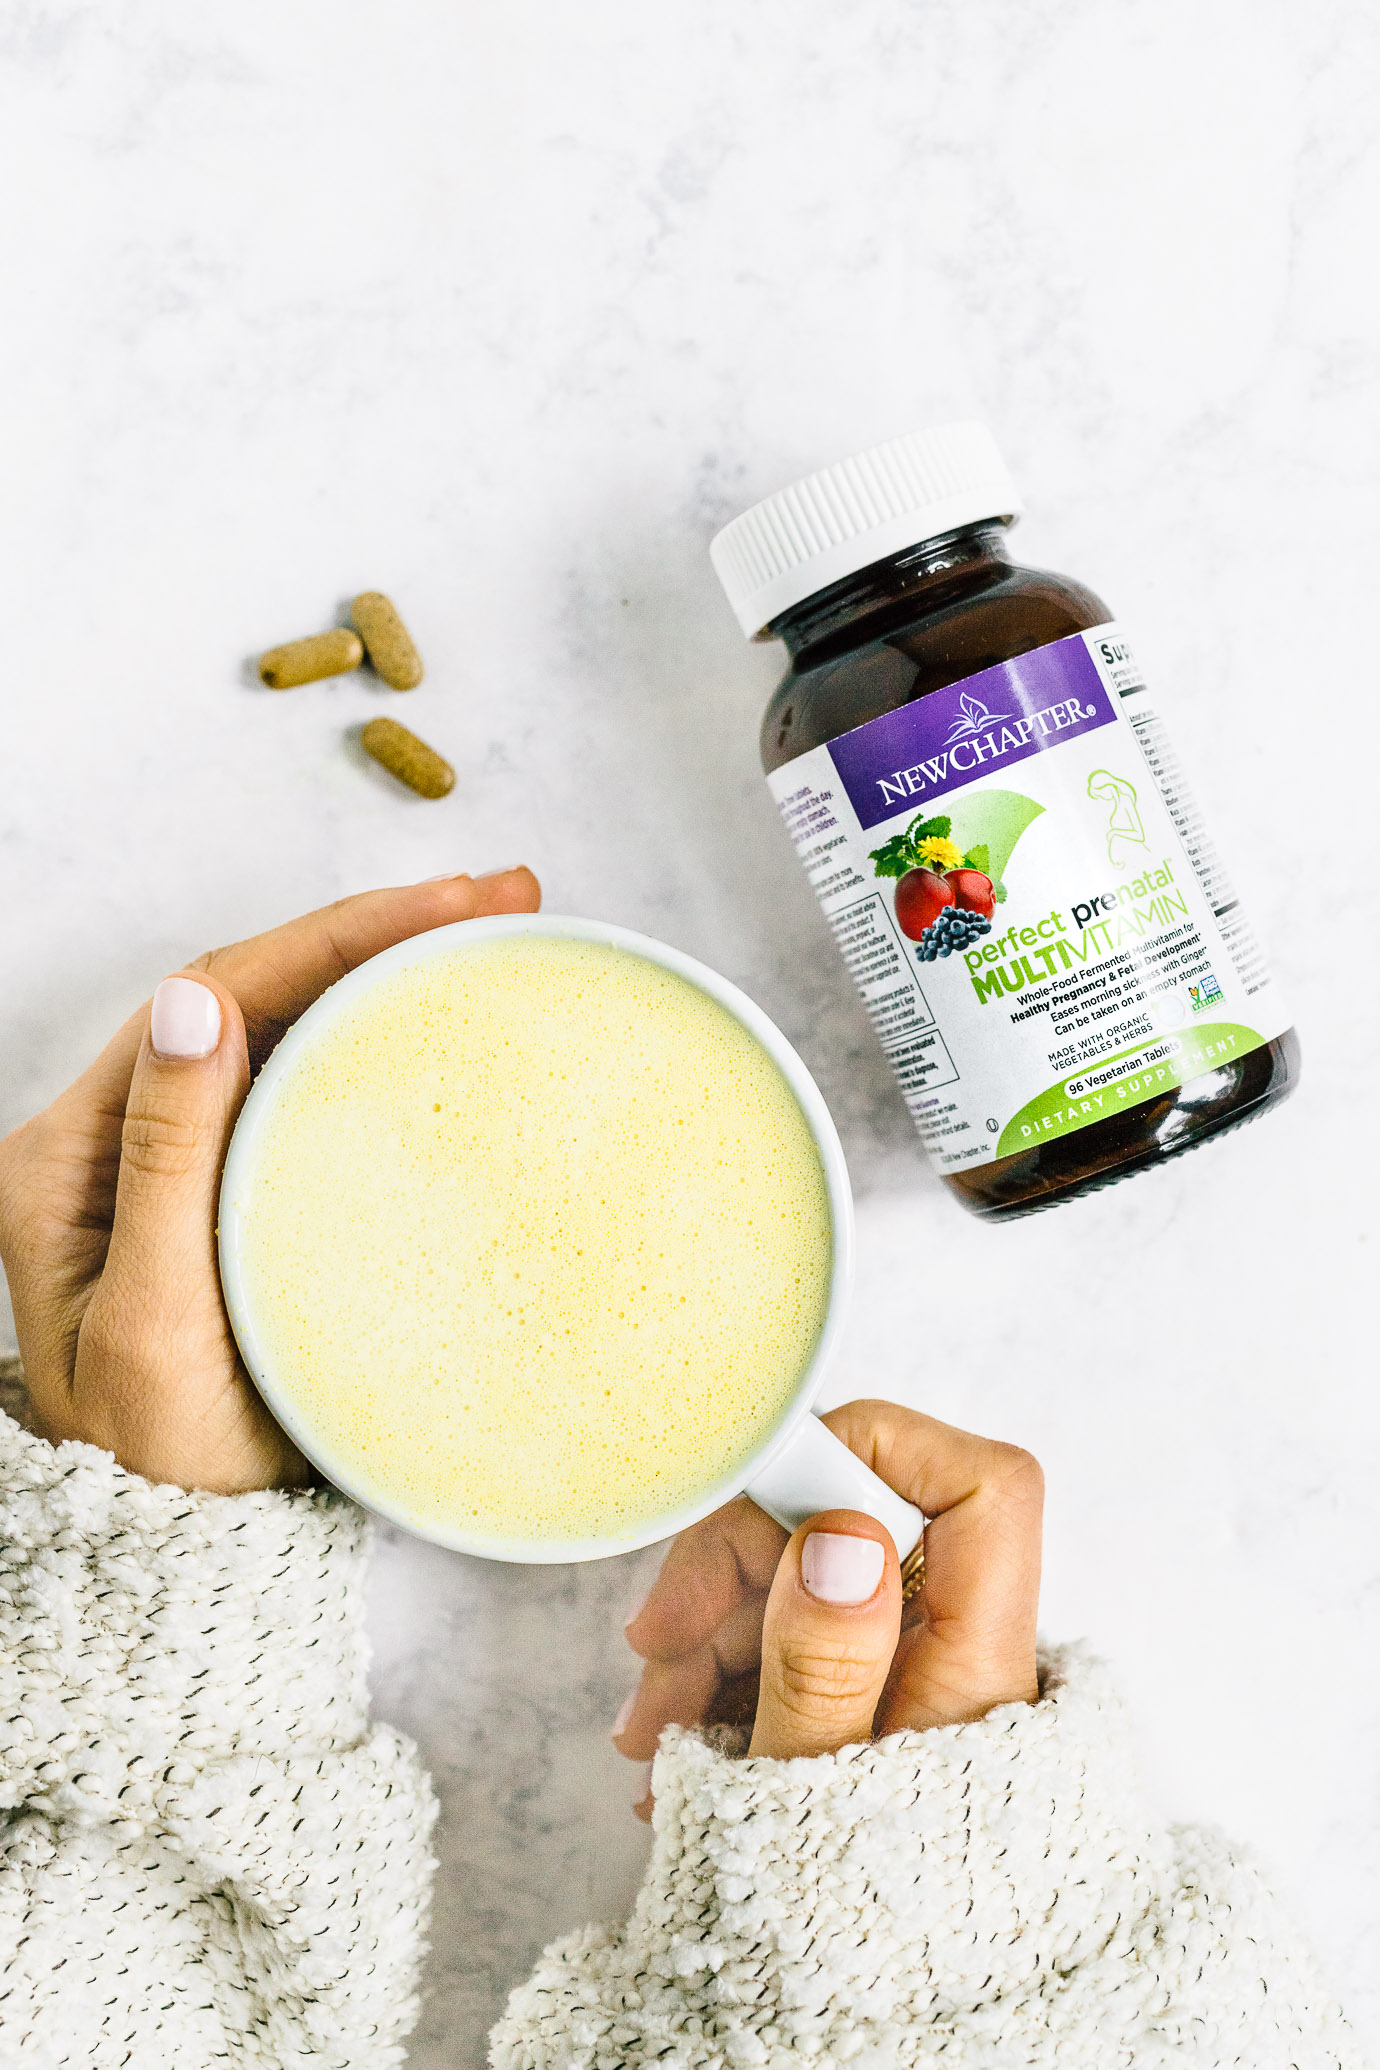 New Chapter's Perfect Prenatal Multivitamin bottle and golden milk latte